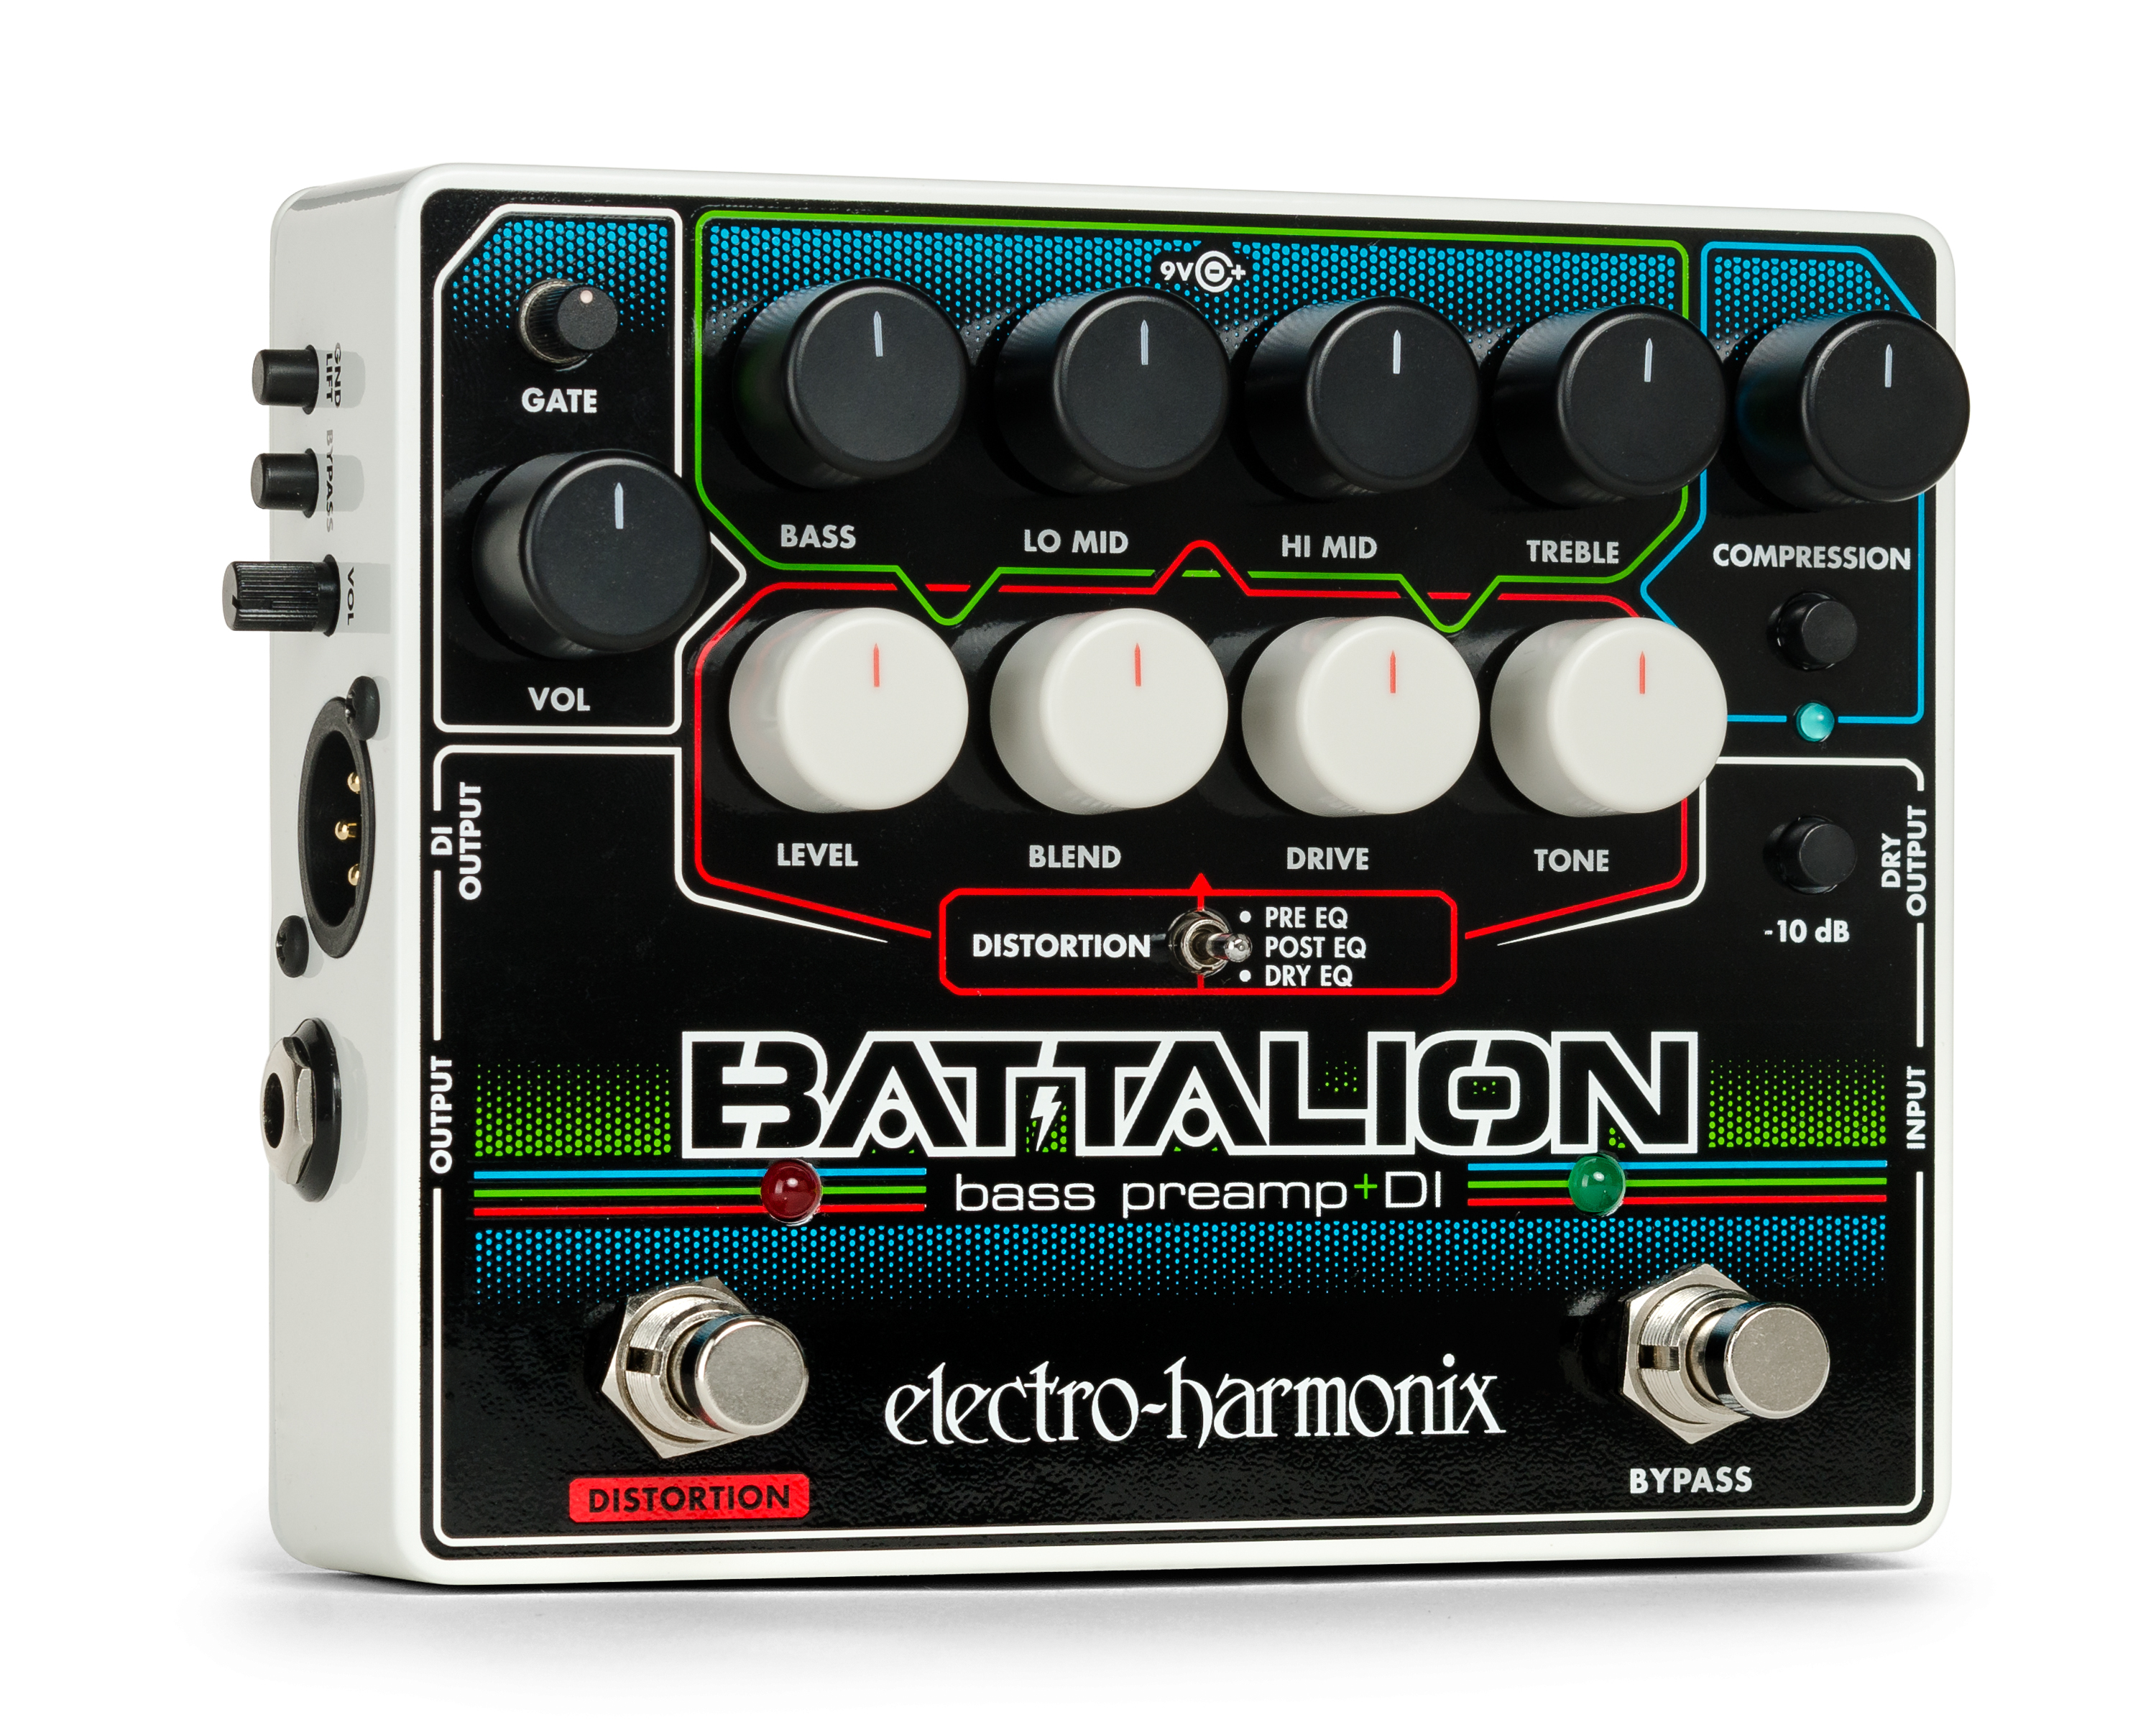 The Battalion Bass Preamp and DI